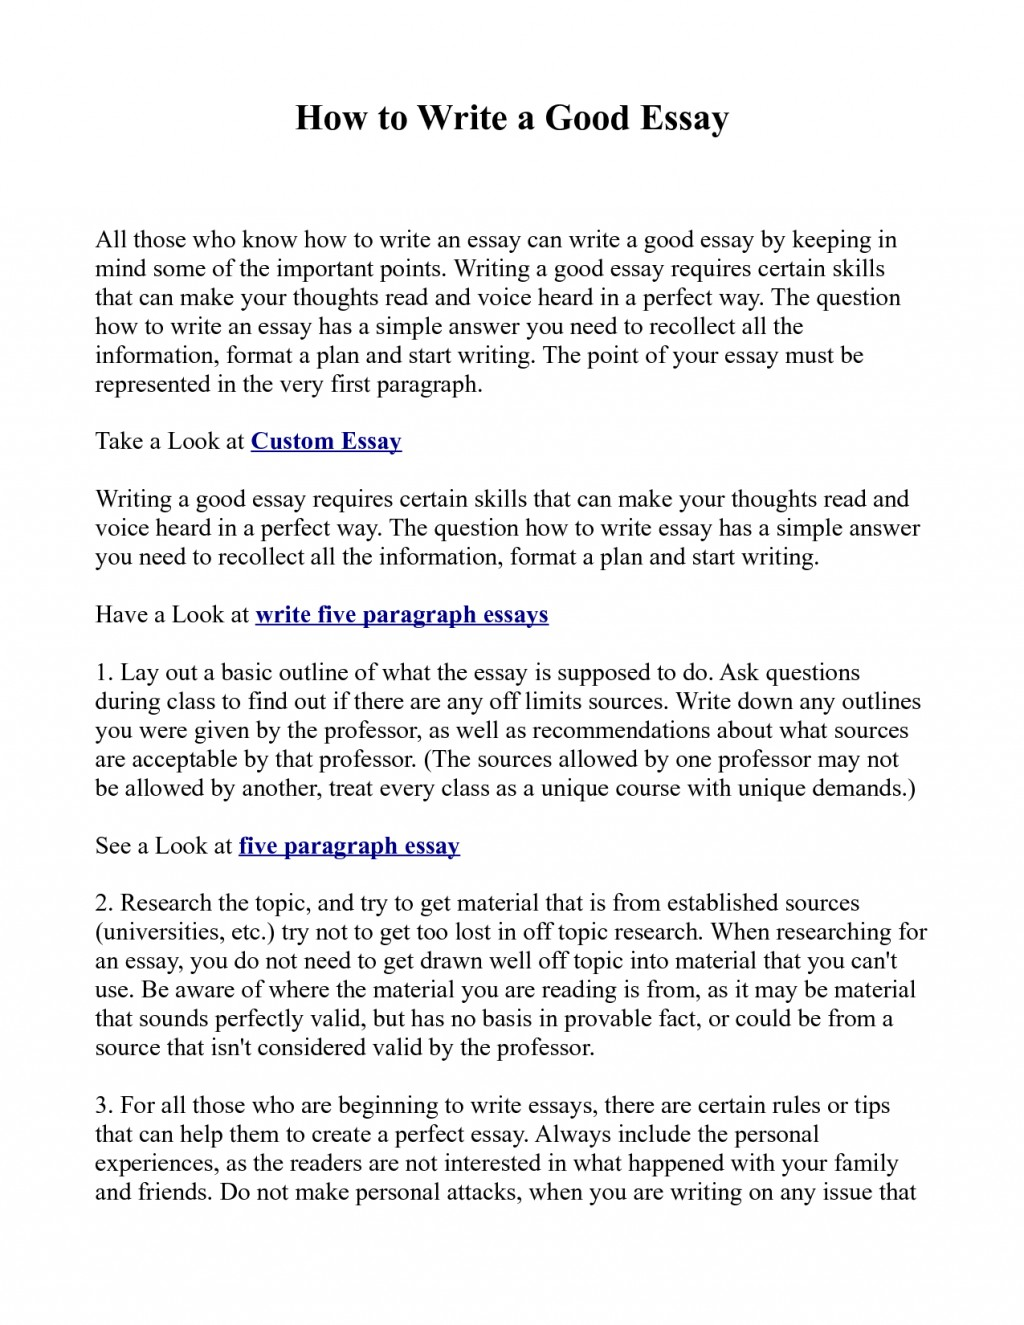 003 How To Make Good Essay Stupendous A Paper Plane Step By Title Page Thesis Statement For Descriptive Large